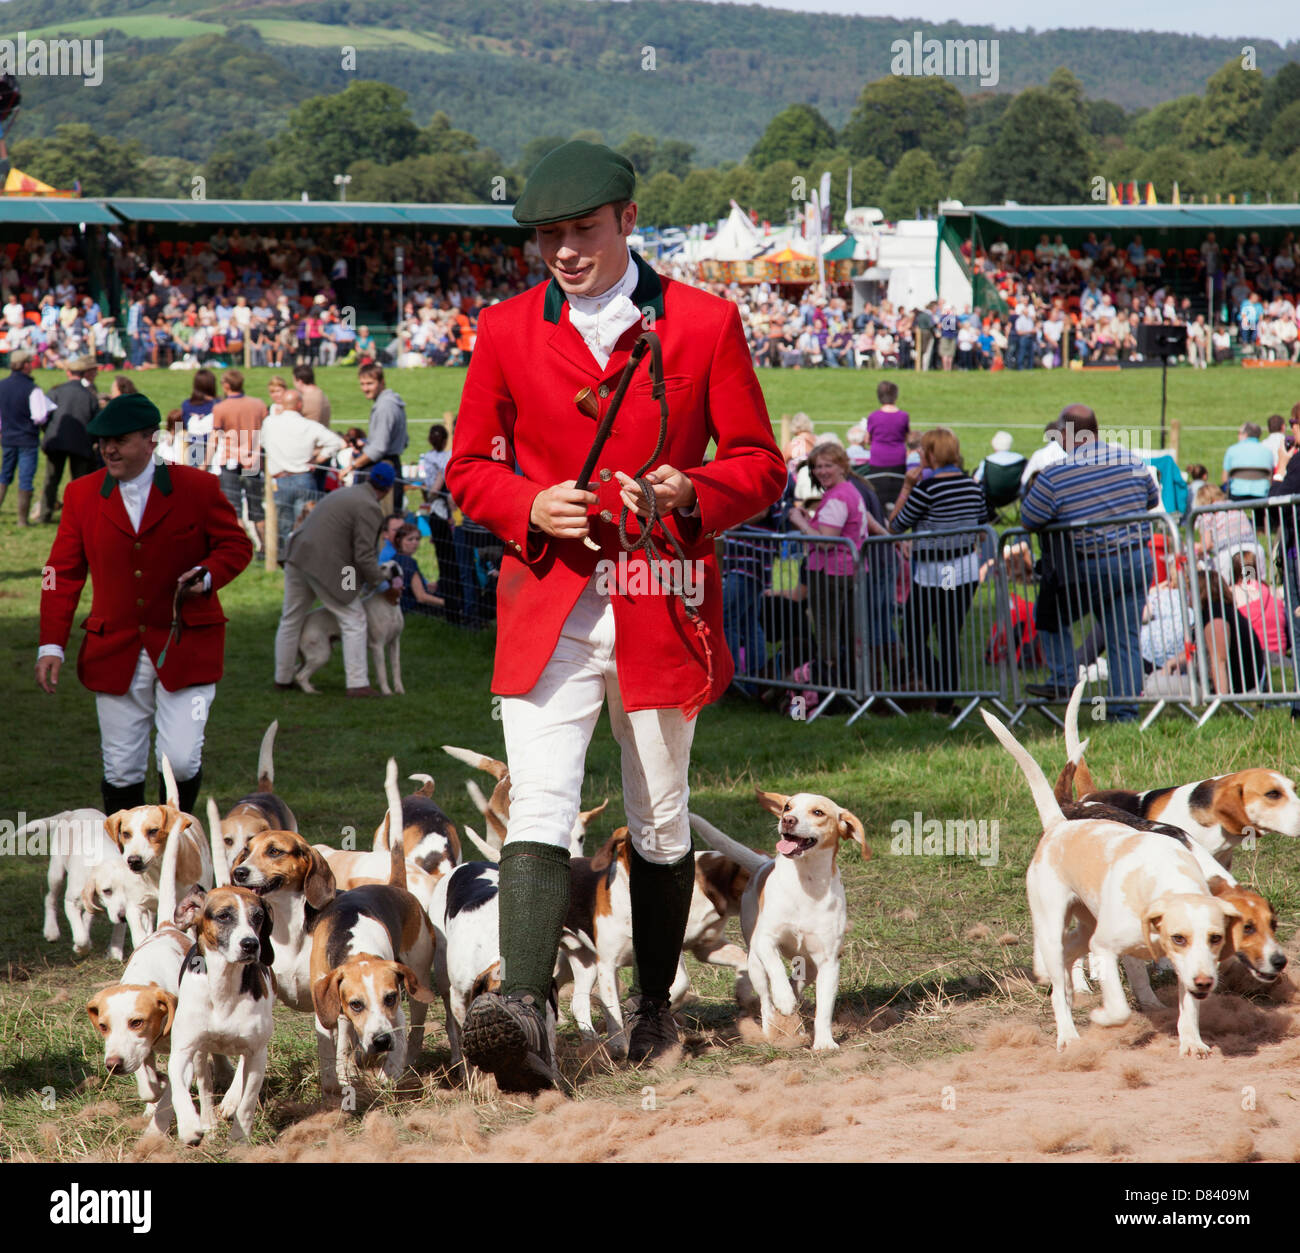 Huntsman with hounds at the Chatsworth Game Fair, Derbyshire, England, U.K. - Stock Image